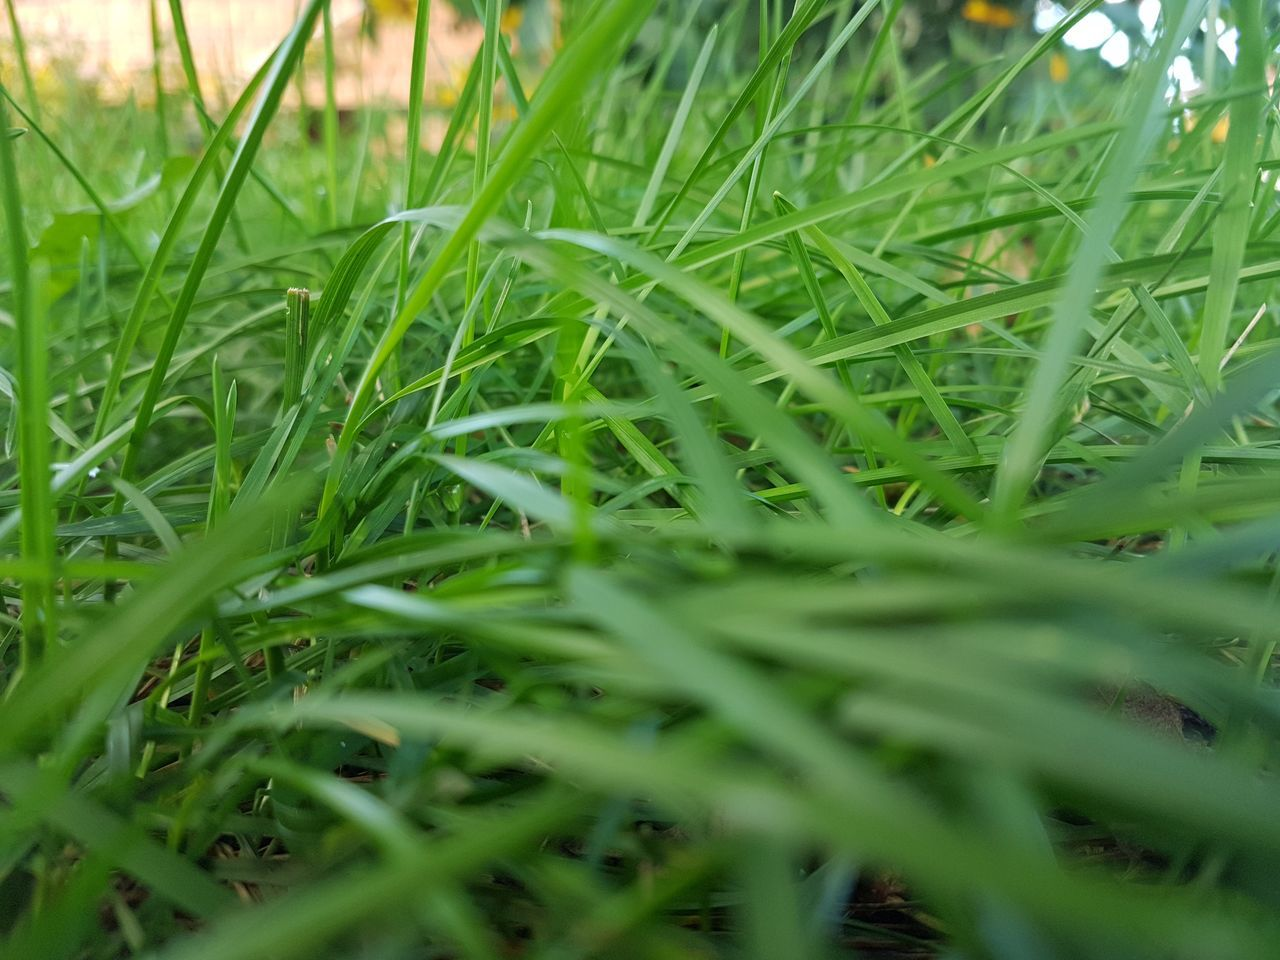 grass, green color, growth, selective focus, nature, field, close-up, no people, day, plant, outdoors, beauty in nature, freshness